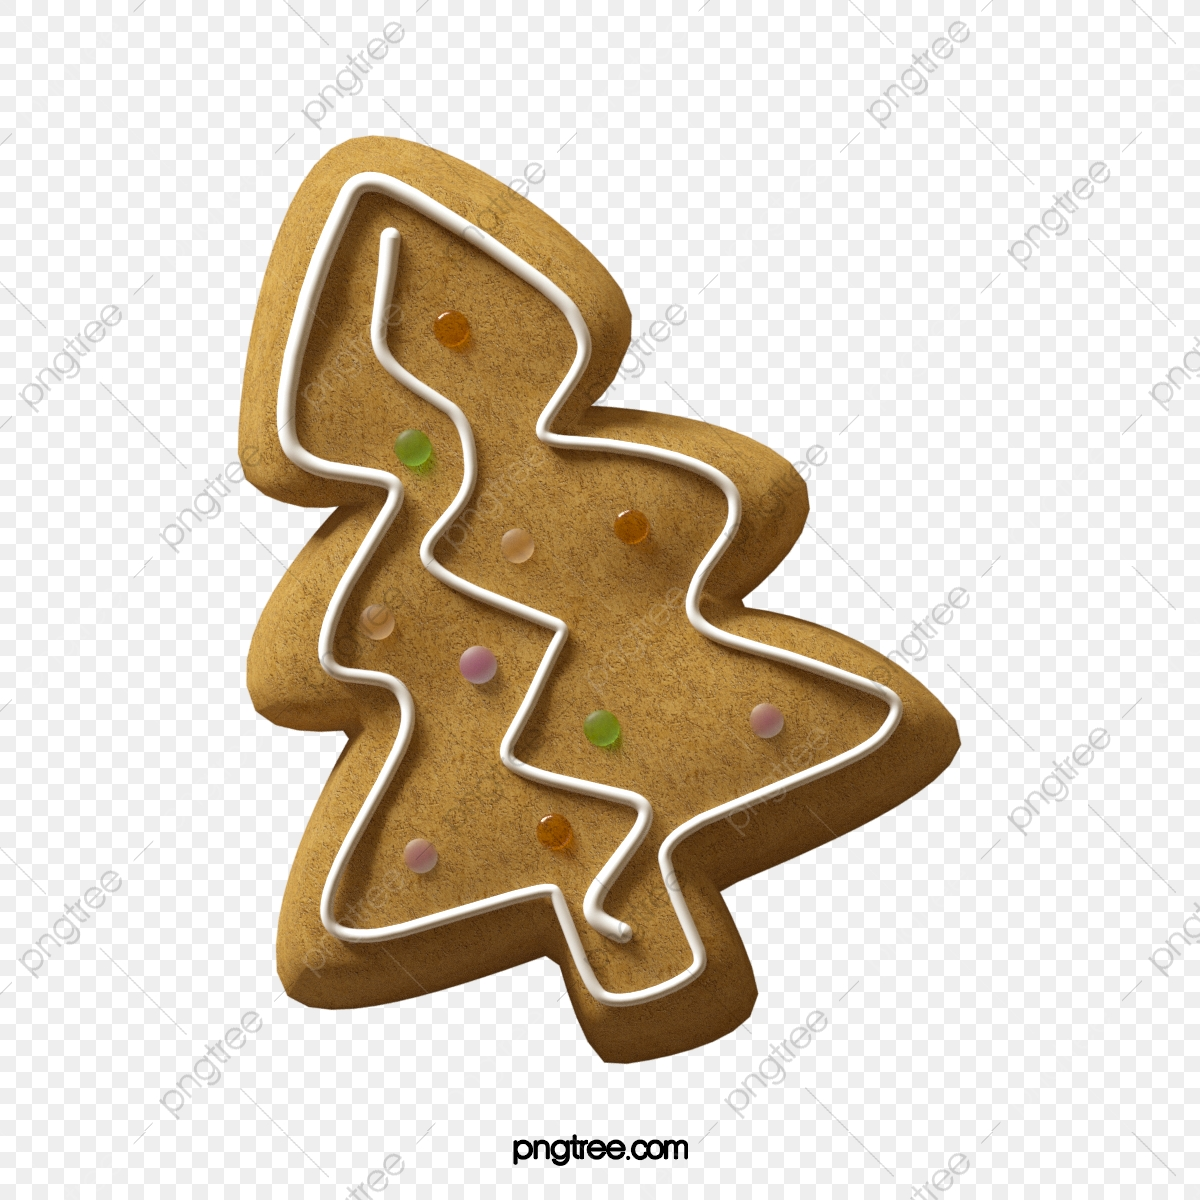 Christmas Cookies Png Images Vector And Psd Files Free Download On Pngtree